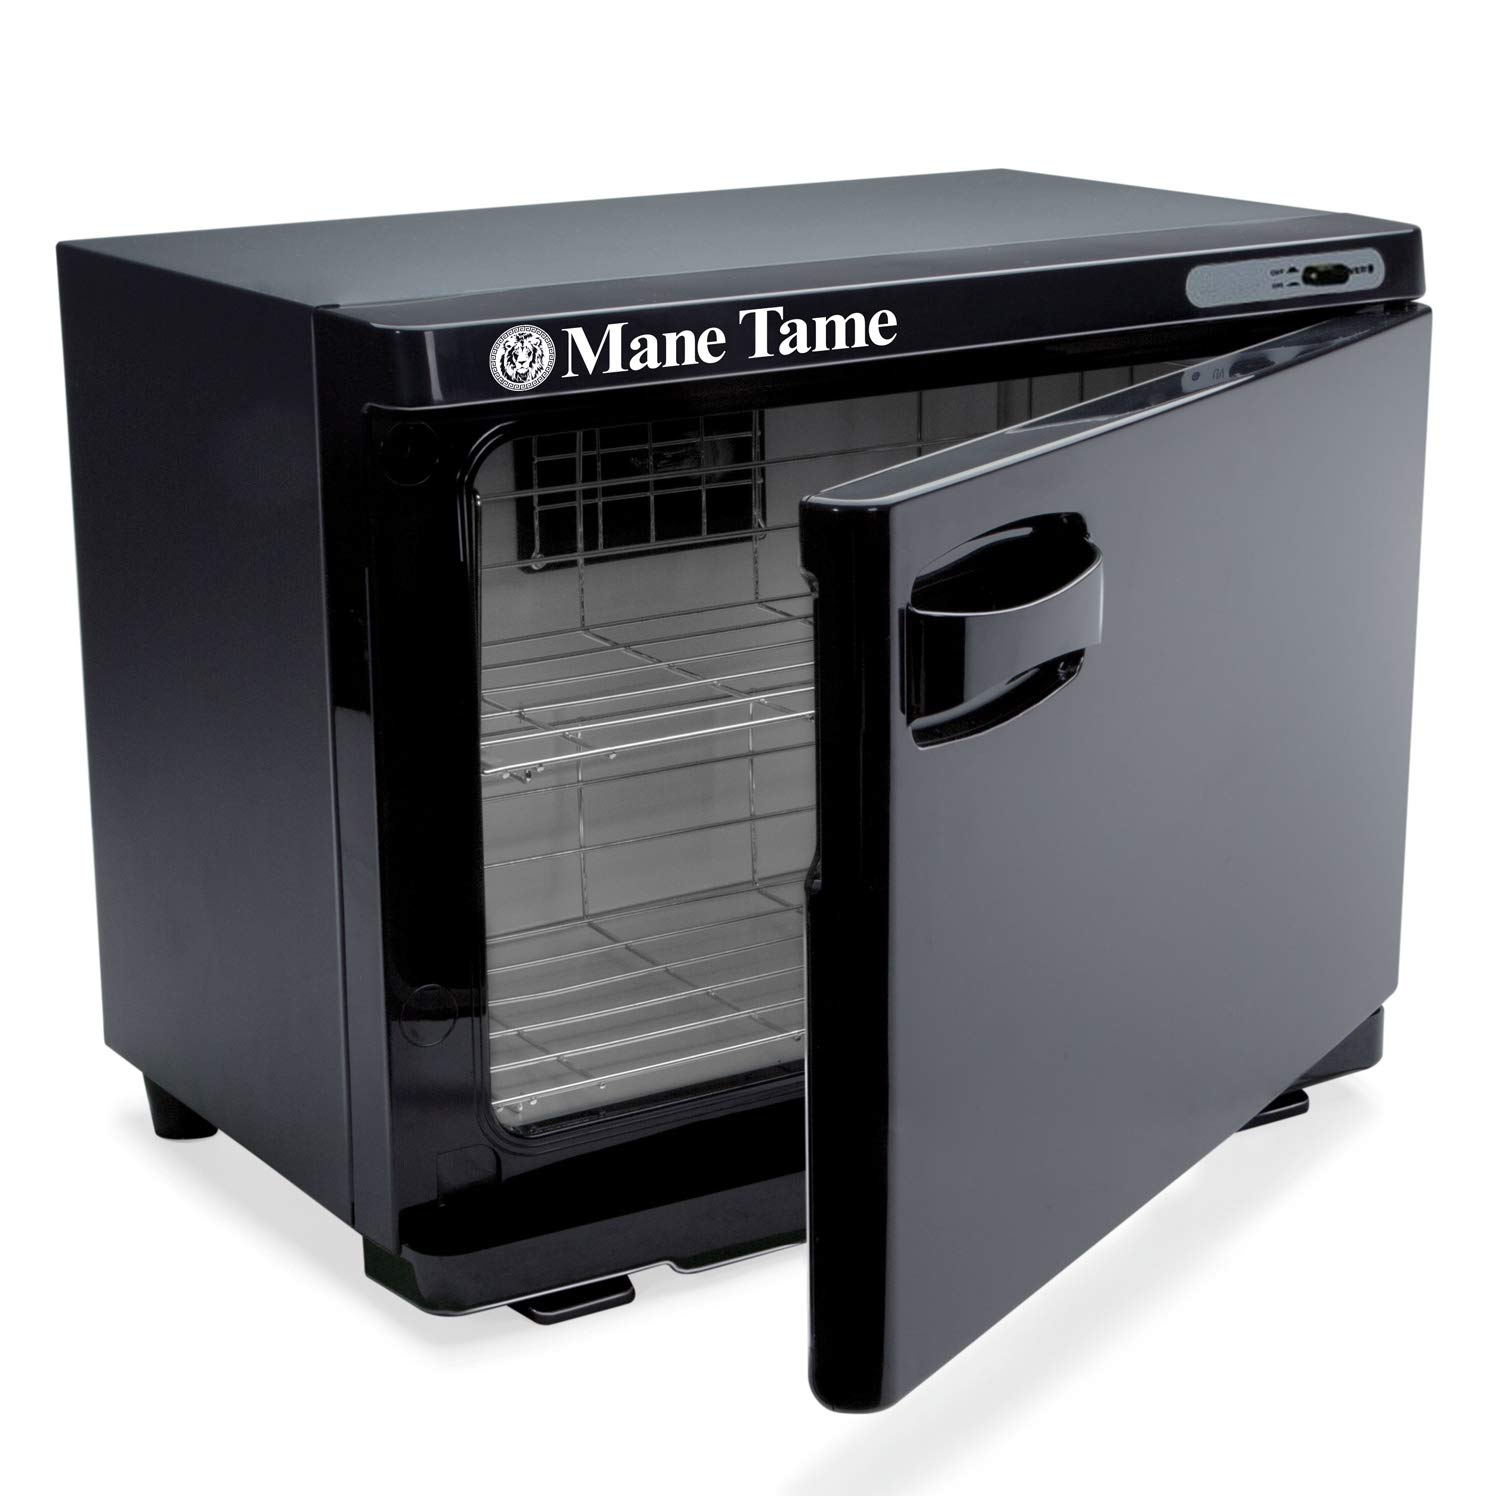 Mane Tame Professional Barber Large Towel Warmer - Pre-Hot Towel Facial Shave Cabinet comfortably fits (28) 15'' x 28'' Towels